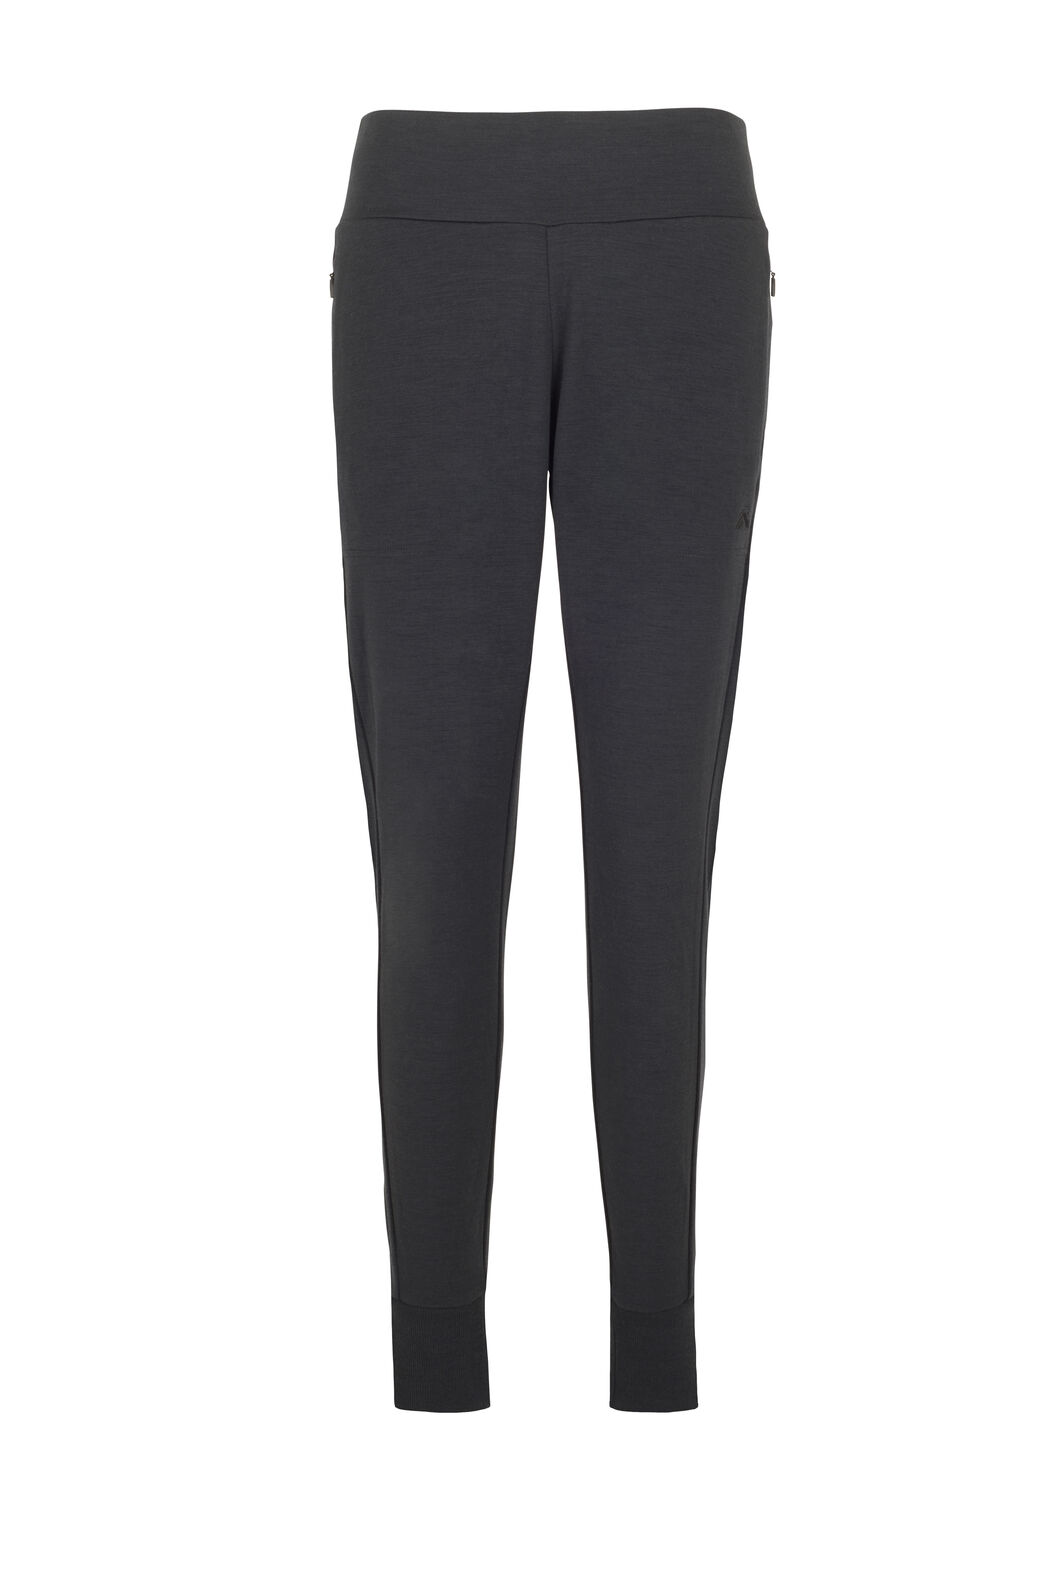 Macpac Merino Blend Track Pants — Women's, Black, hi-res